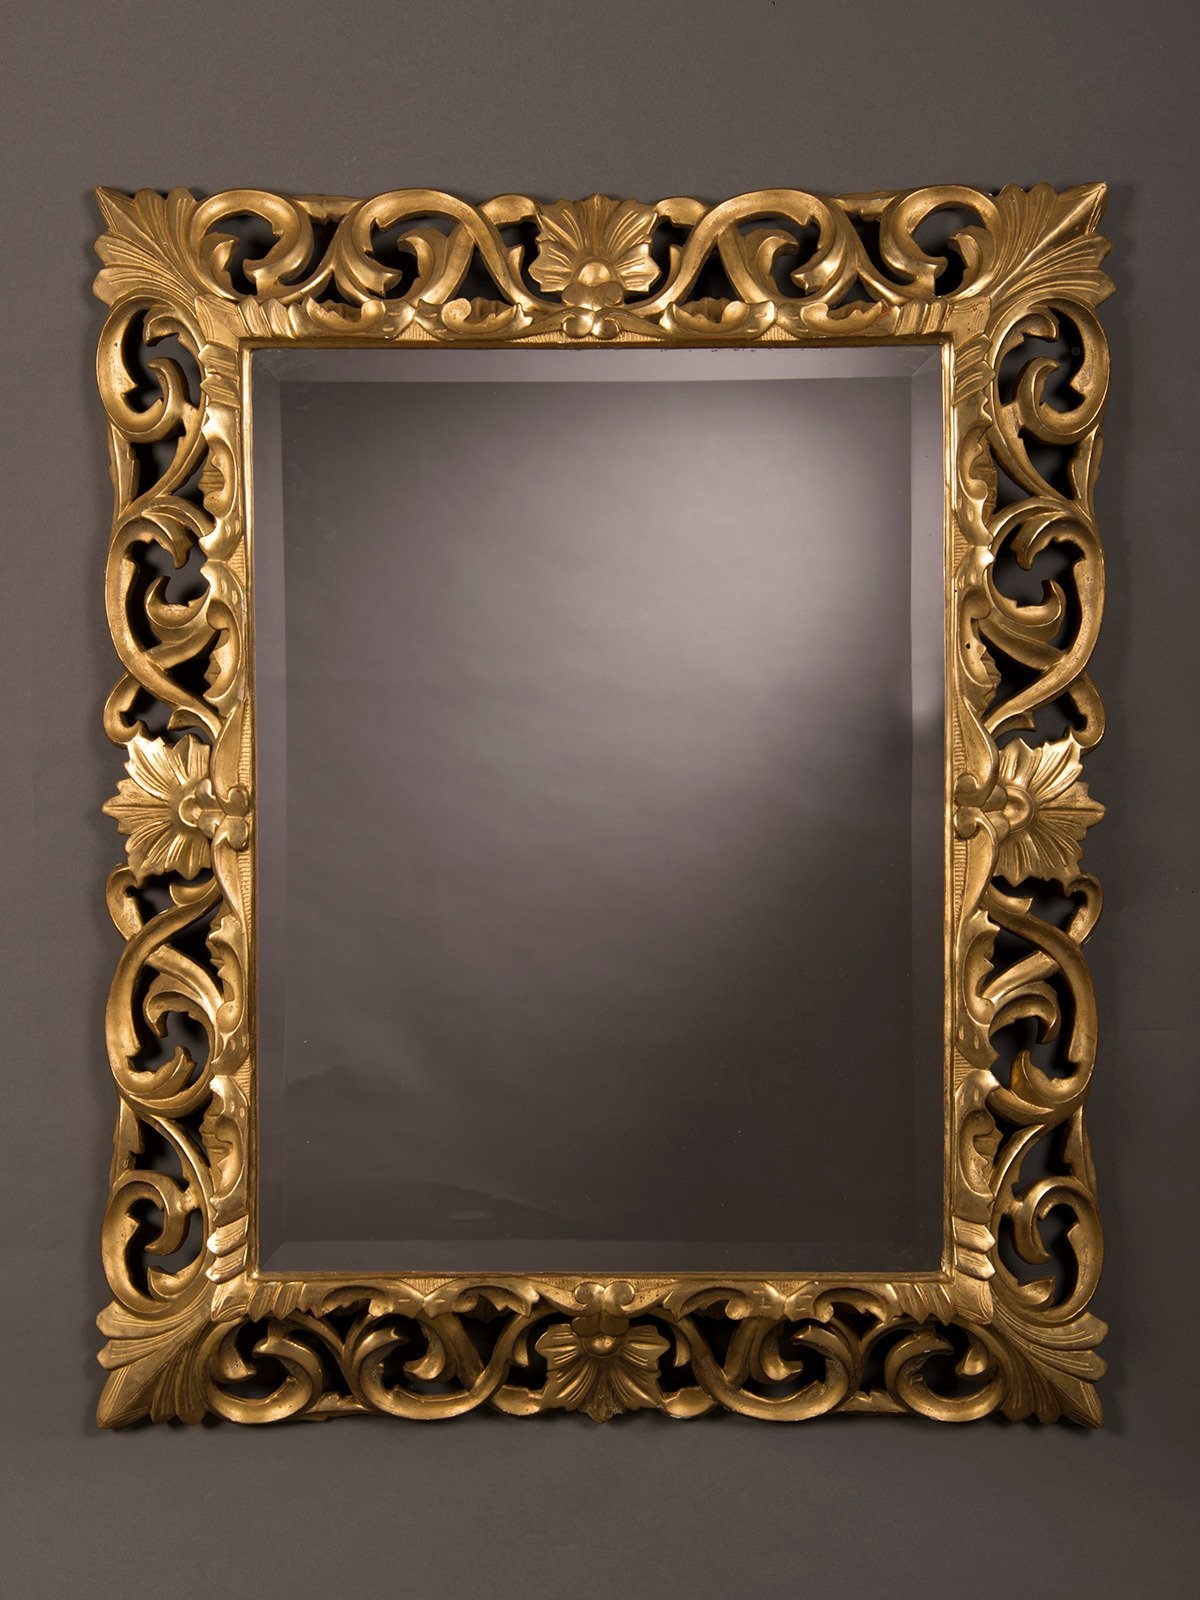 Antique French Baroque Style Gold Beveled Mirror 1875 35 12w X In Baroque Style Mirror (Image 2 of 15)